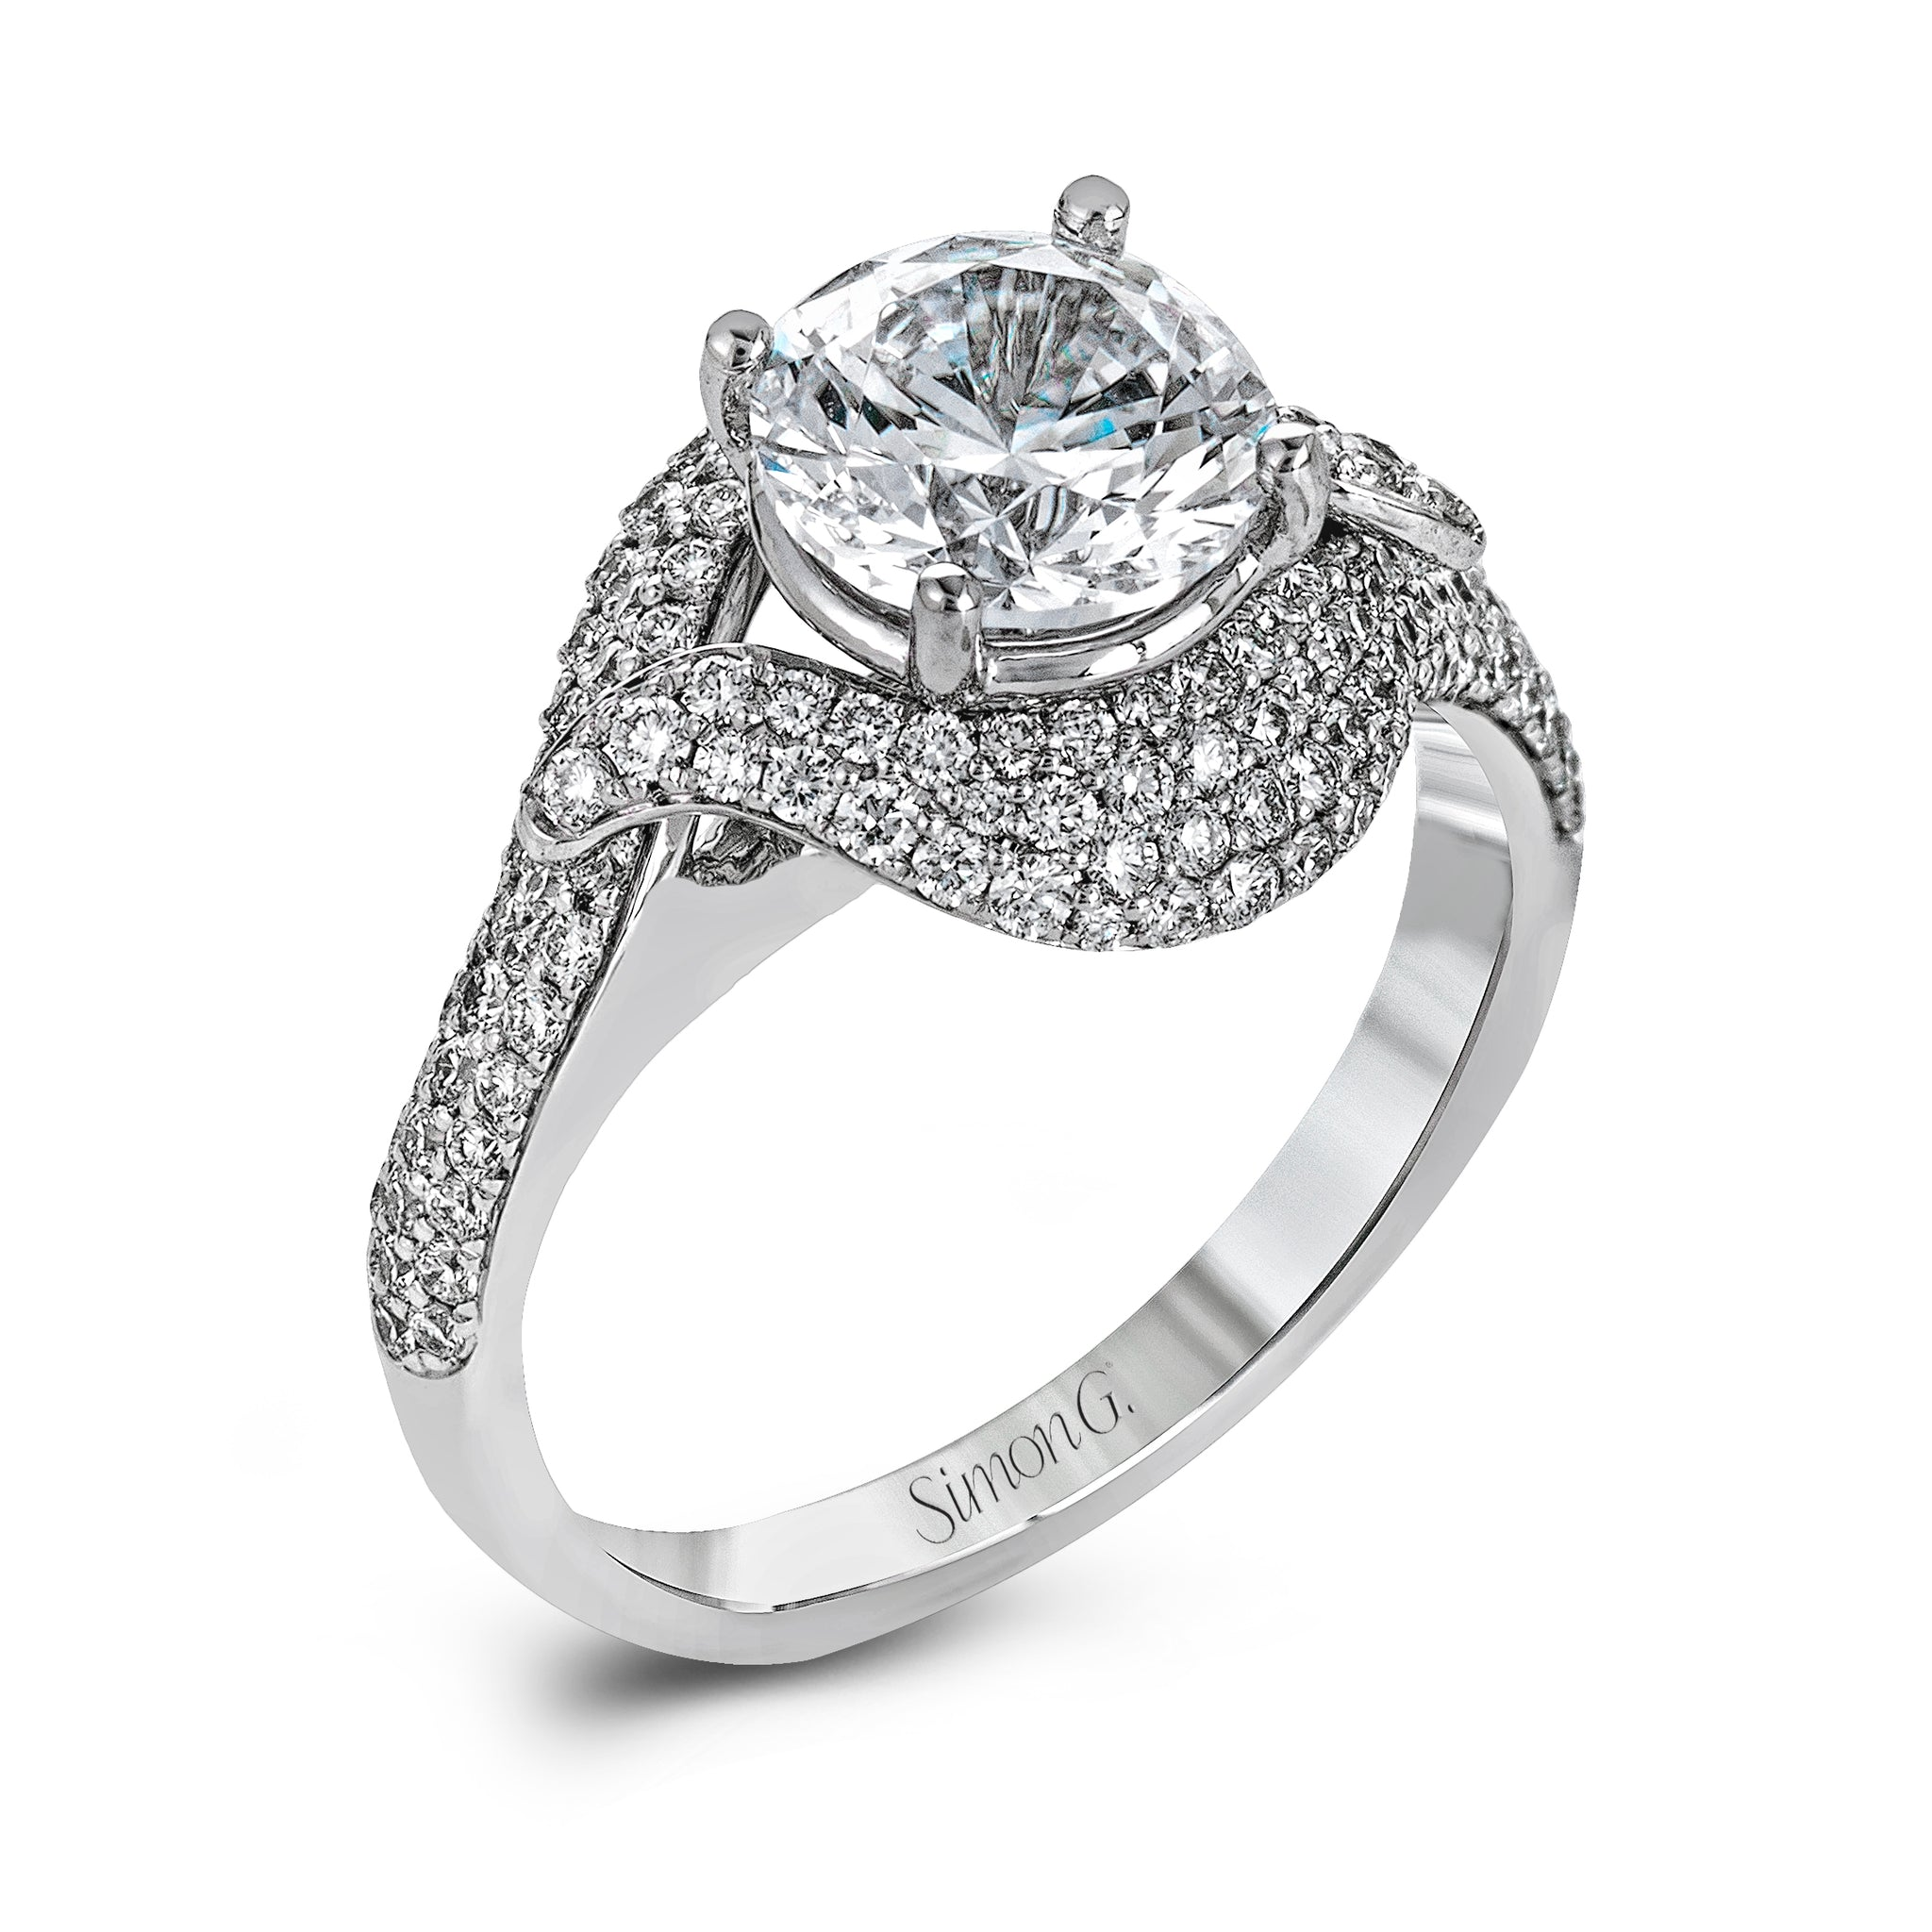 engagement twist romance g collection rings ring classic platinum product halo simon